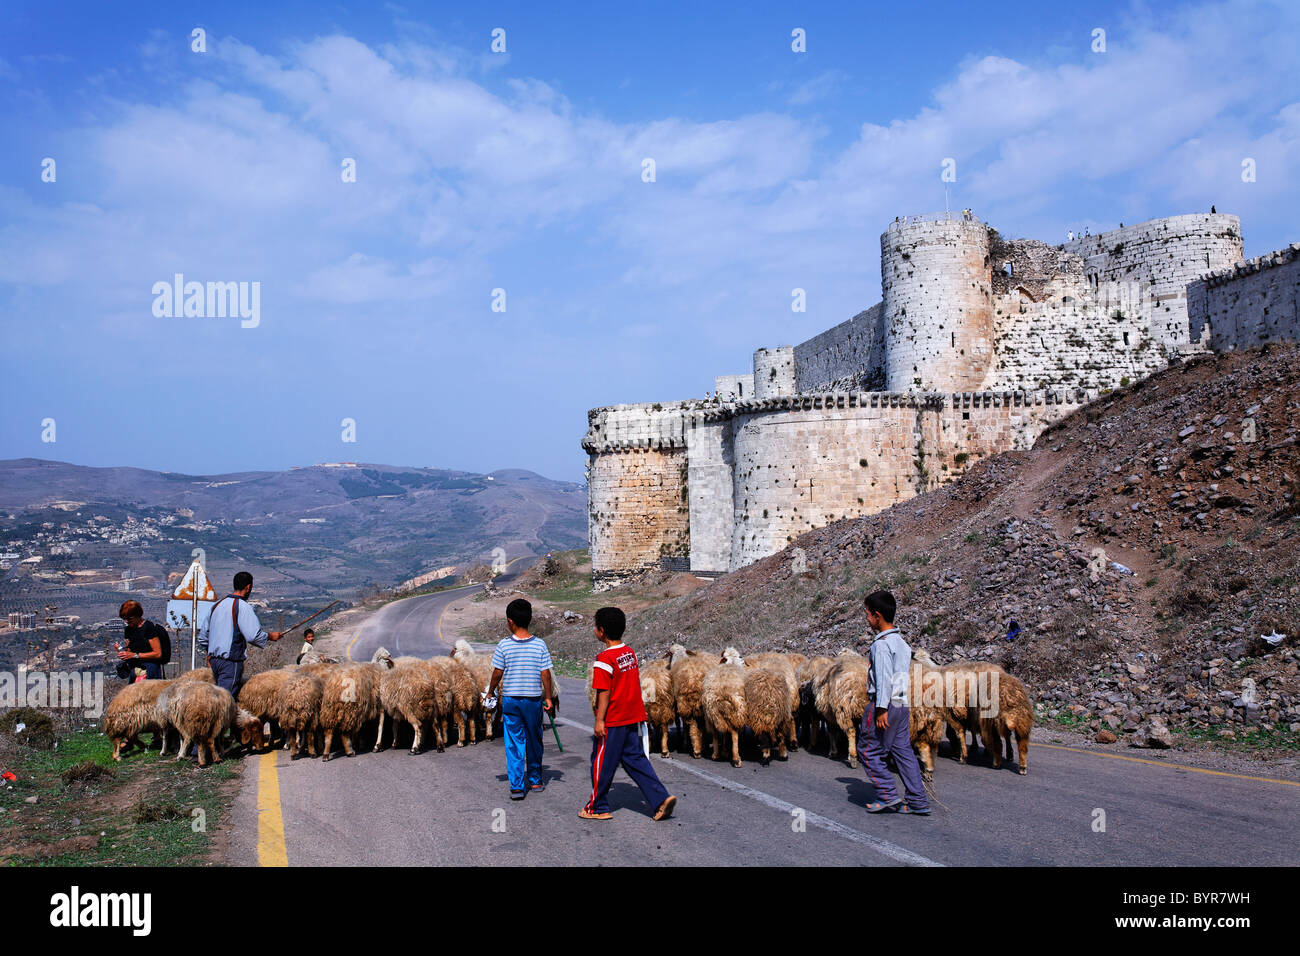 Sheep outside the crusader castle Krak Des Chevaliers, Syria - Stock Image